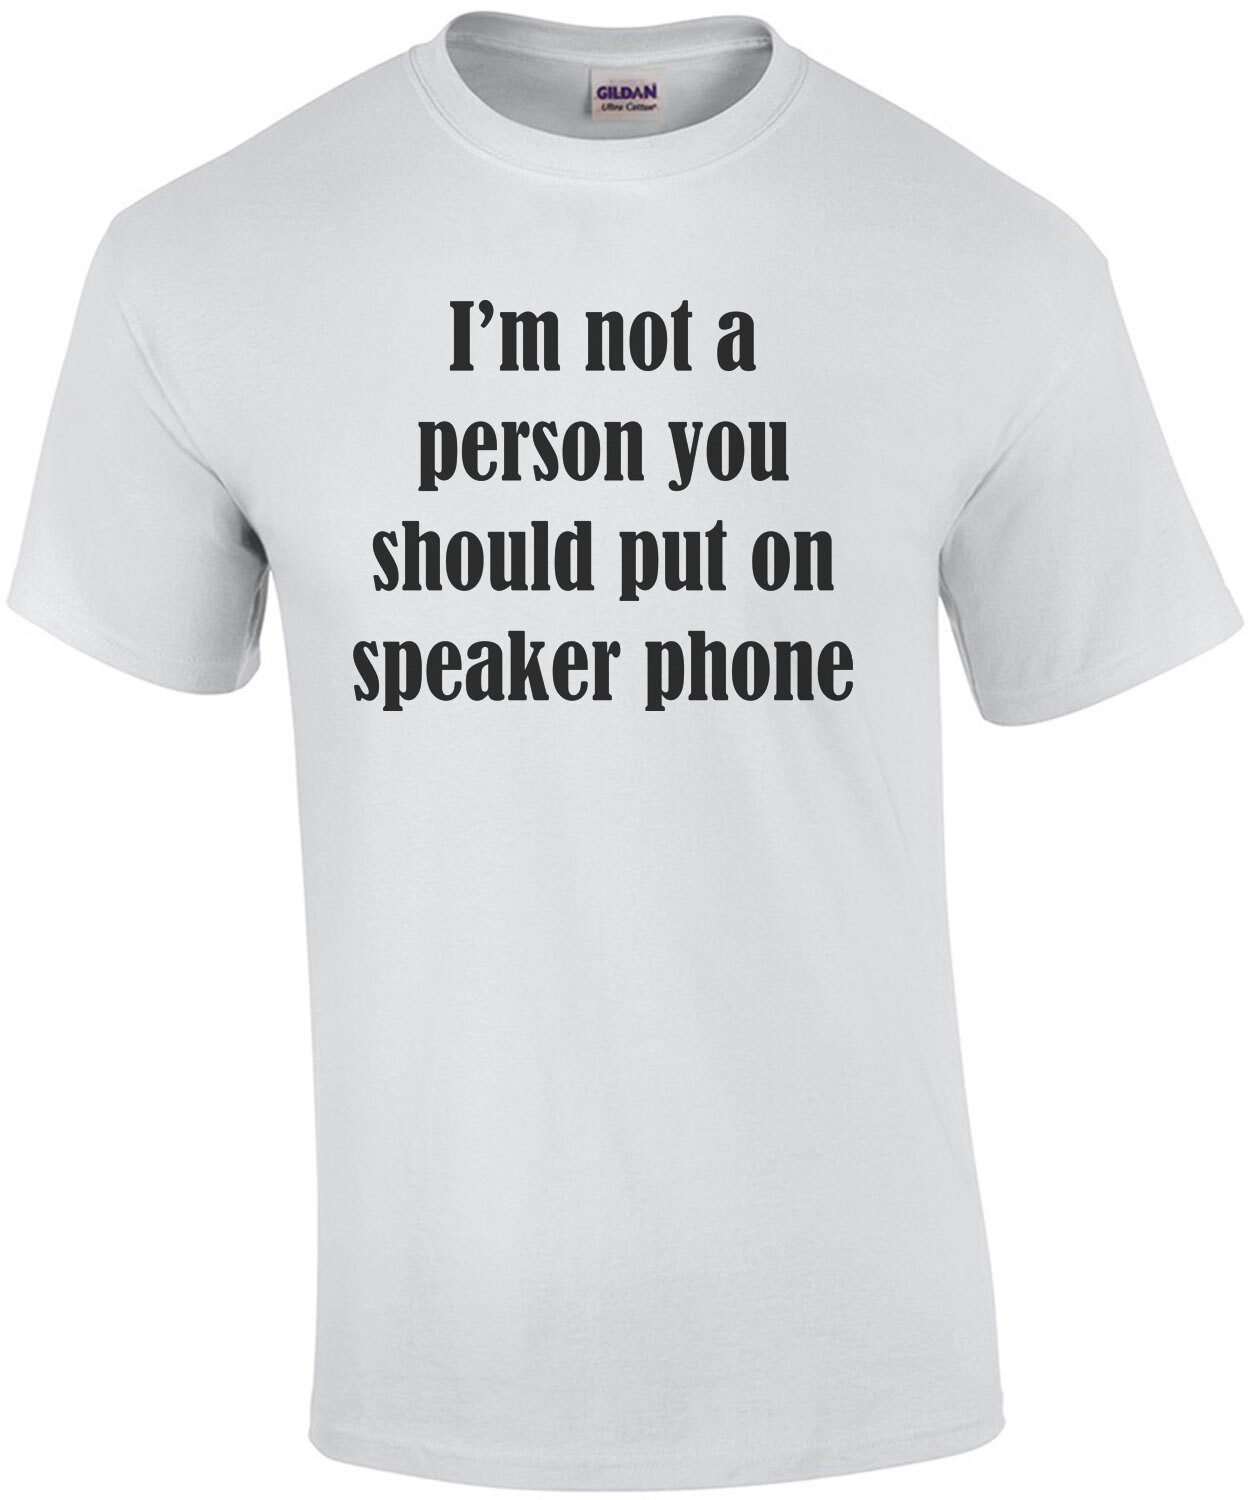 I'm not a person you should put on speaker phone - funny t-shirt